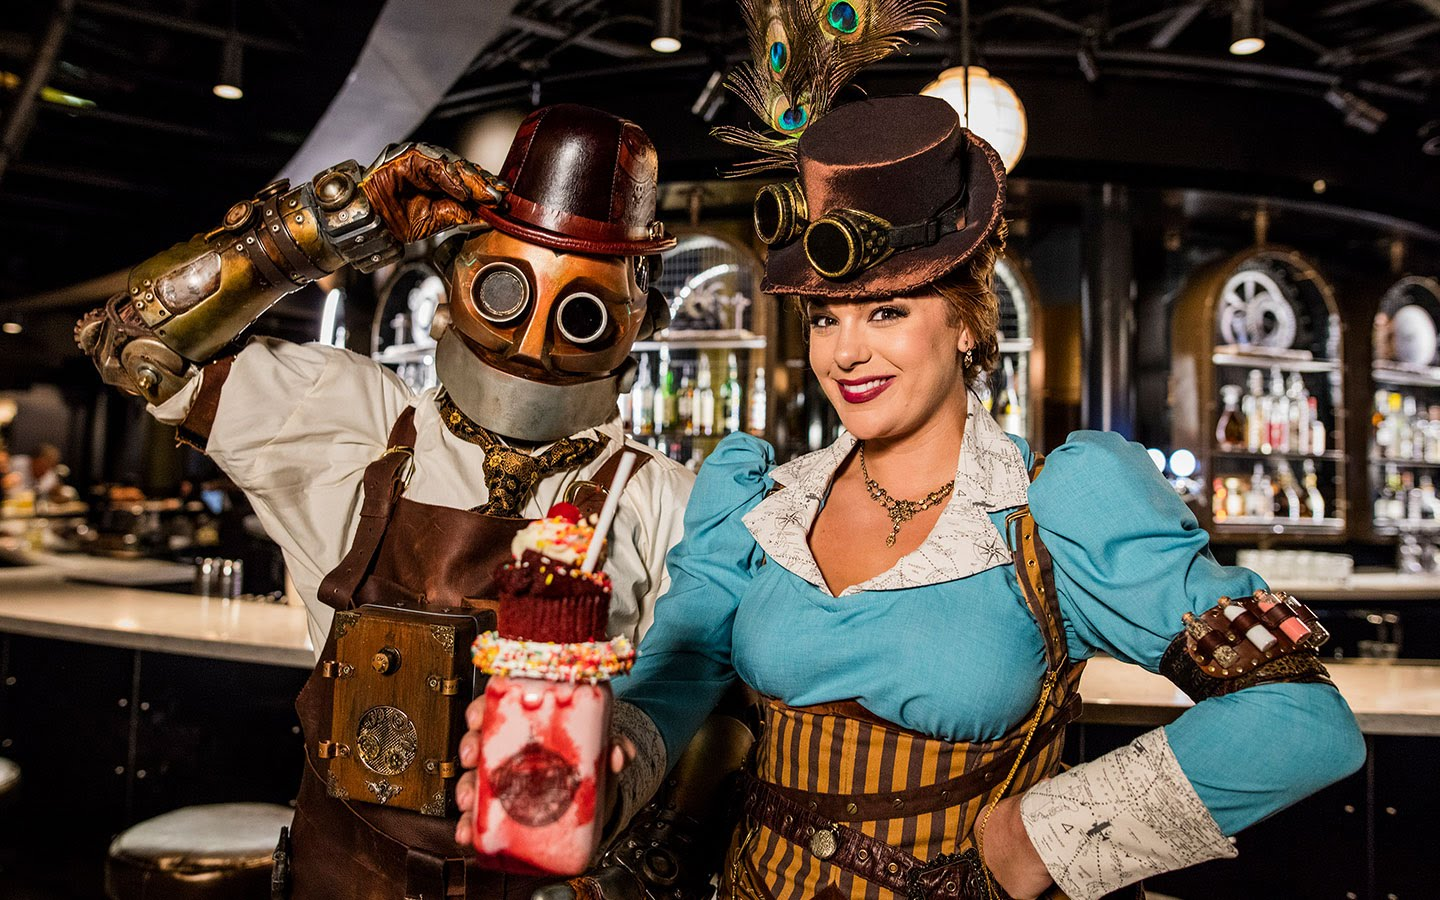 NOW OPEN: The Toothsome Chocolate Emporium & Savory Feast Kitchen